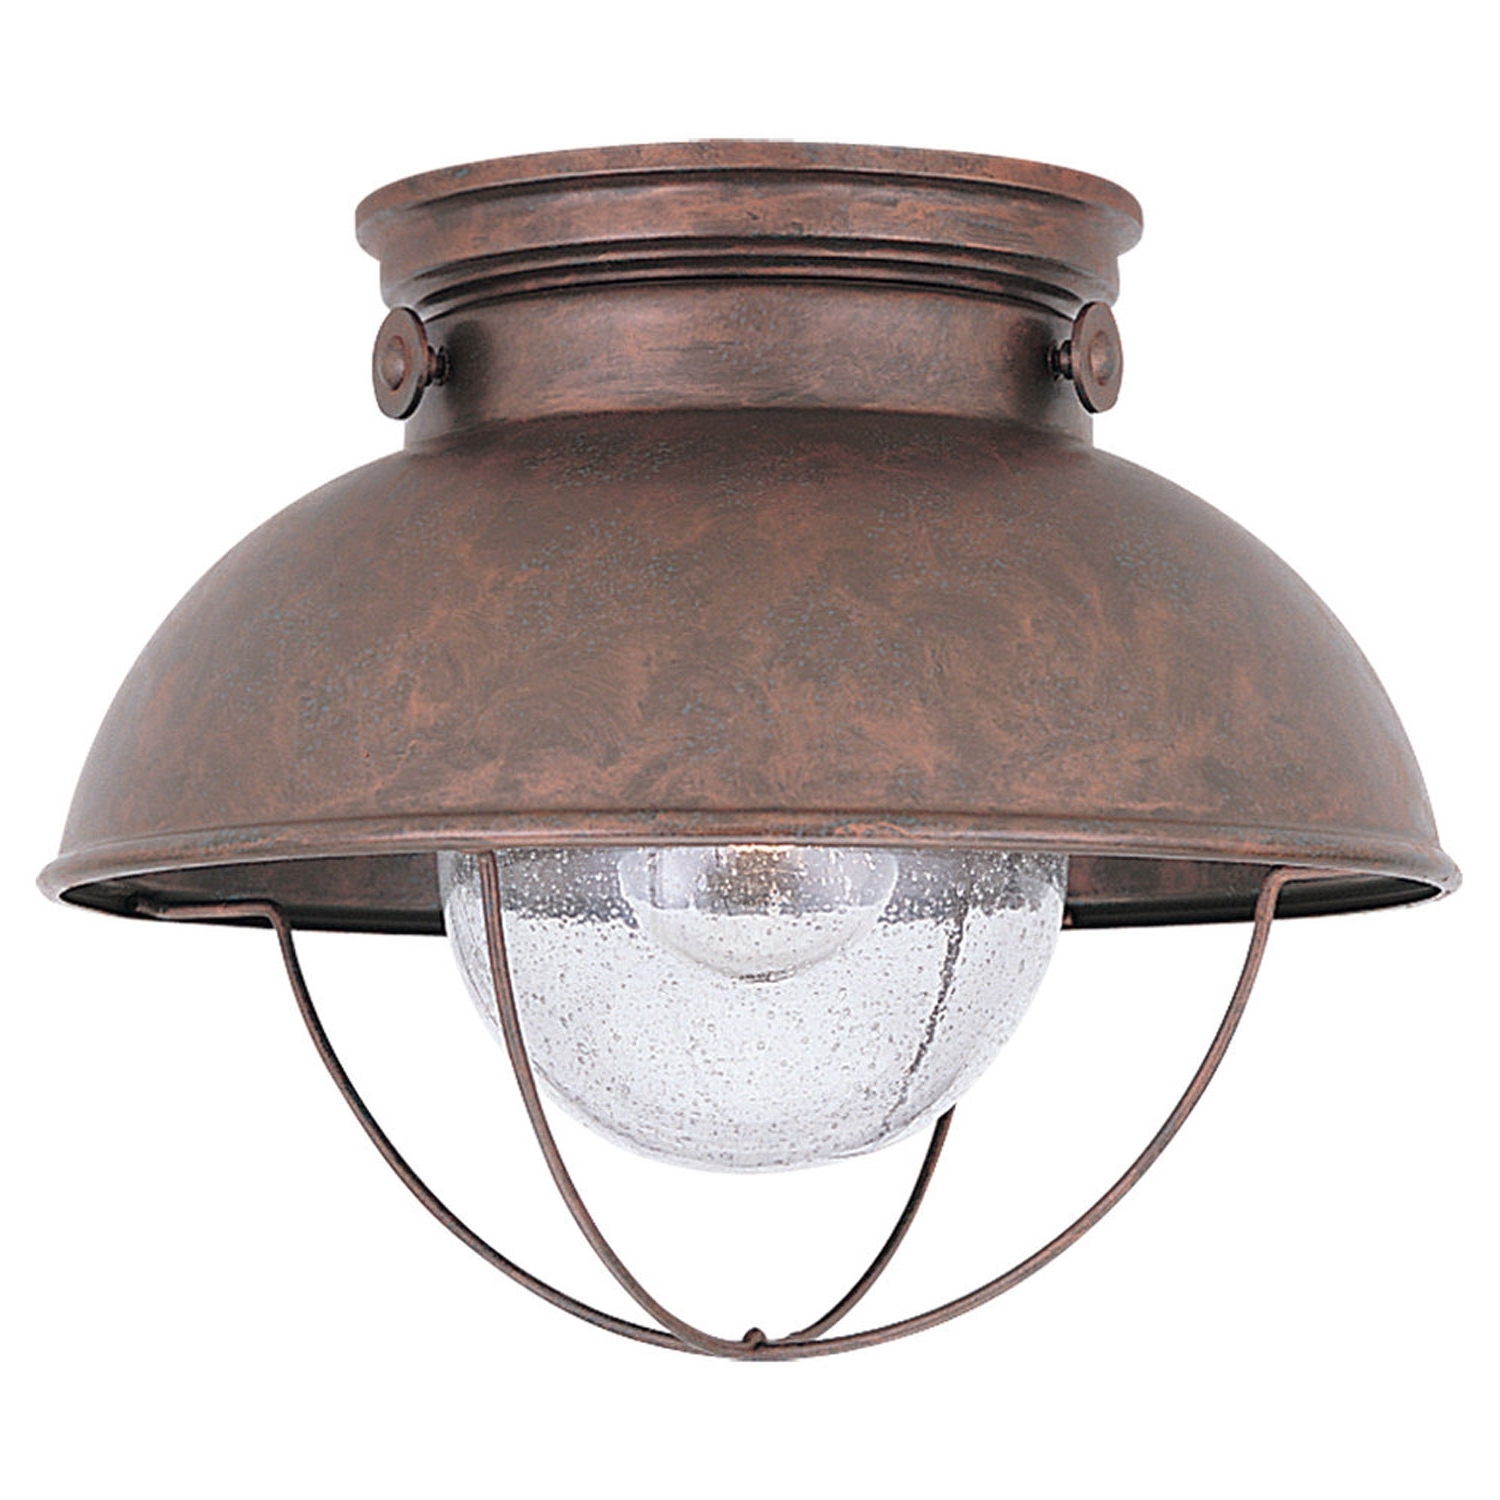 Vintage Outdoor Ceiling Lights Regarding Most Popular Ceiling Fan: Ceiling Light Fixture Astonishing Roundlbl Lighting (View 14 of 20)